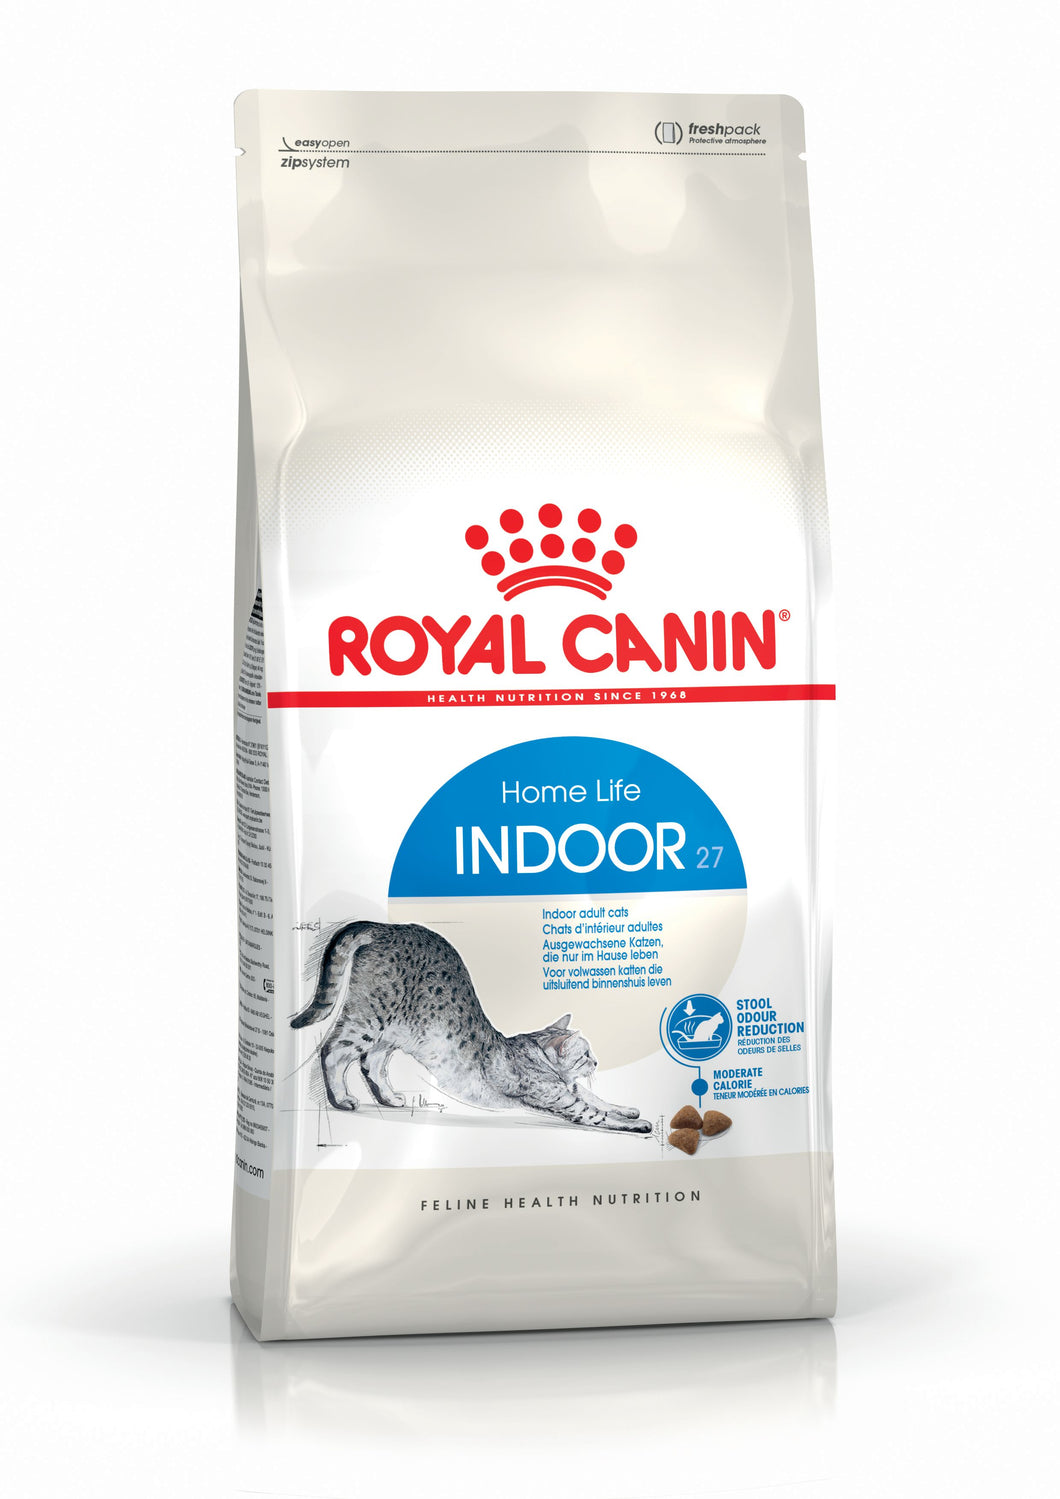 Royal Canin Indoor 27 Dry Cat Food 2KG